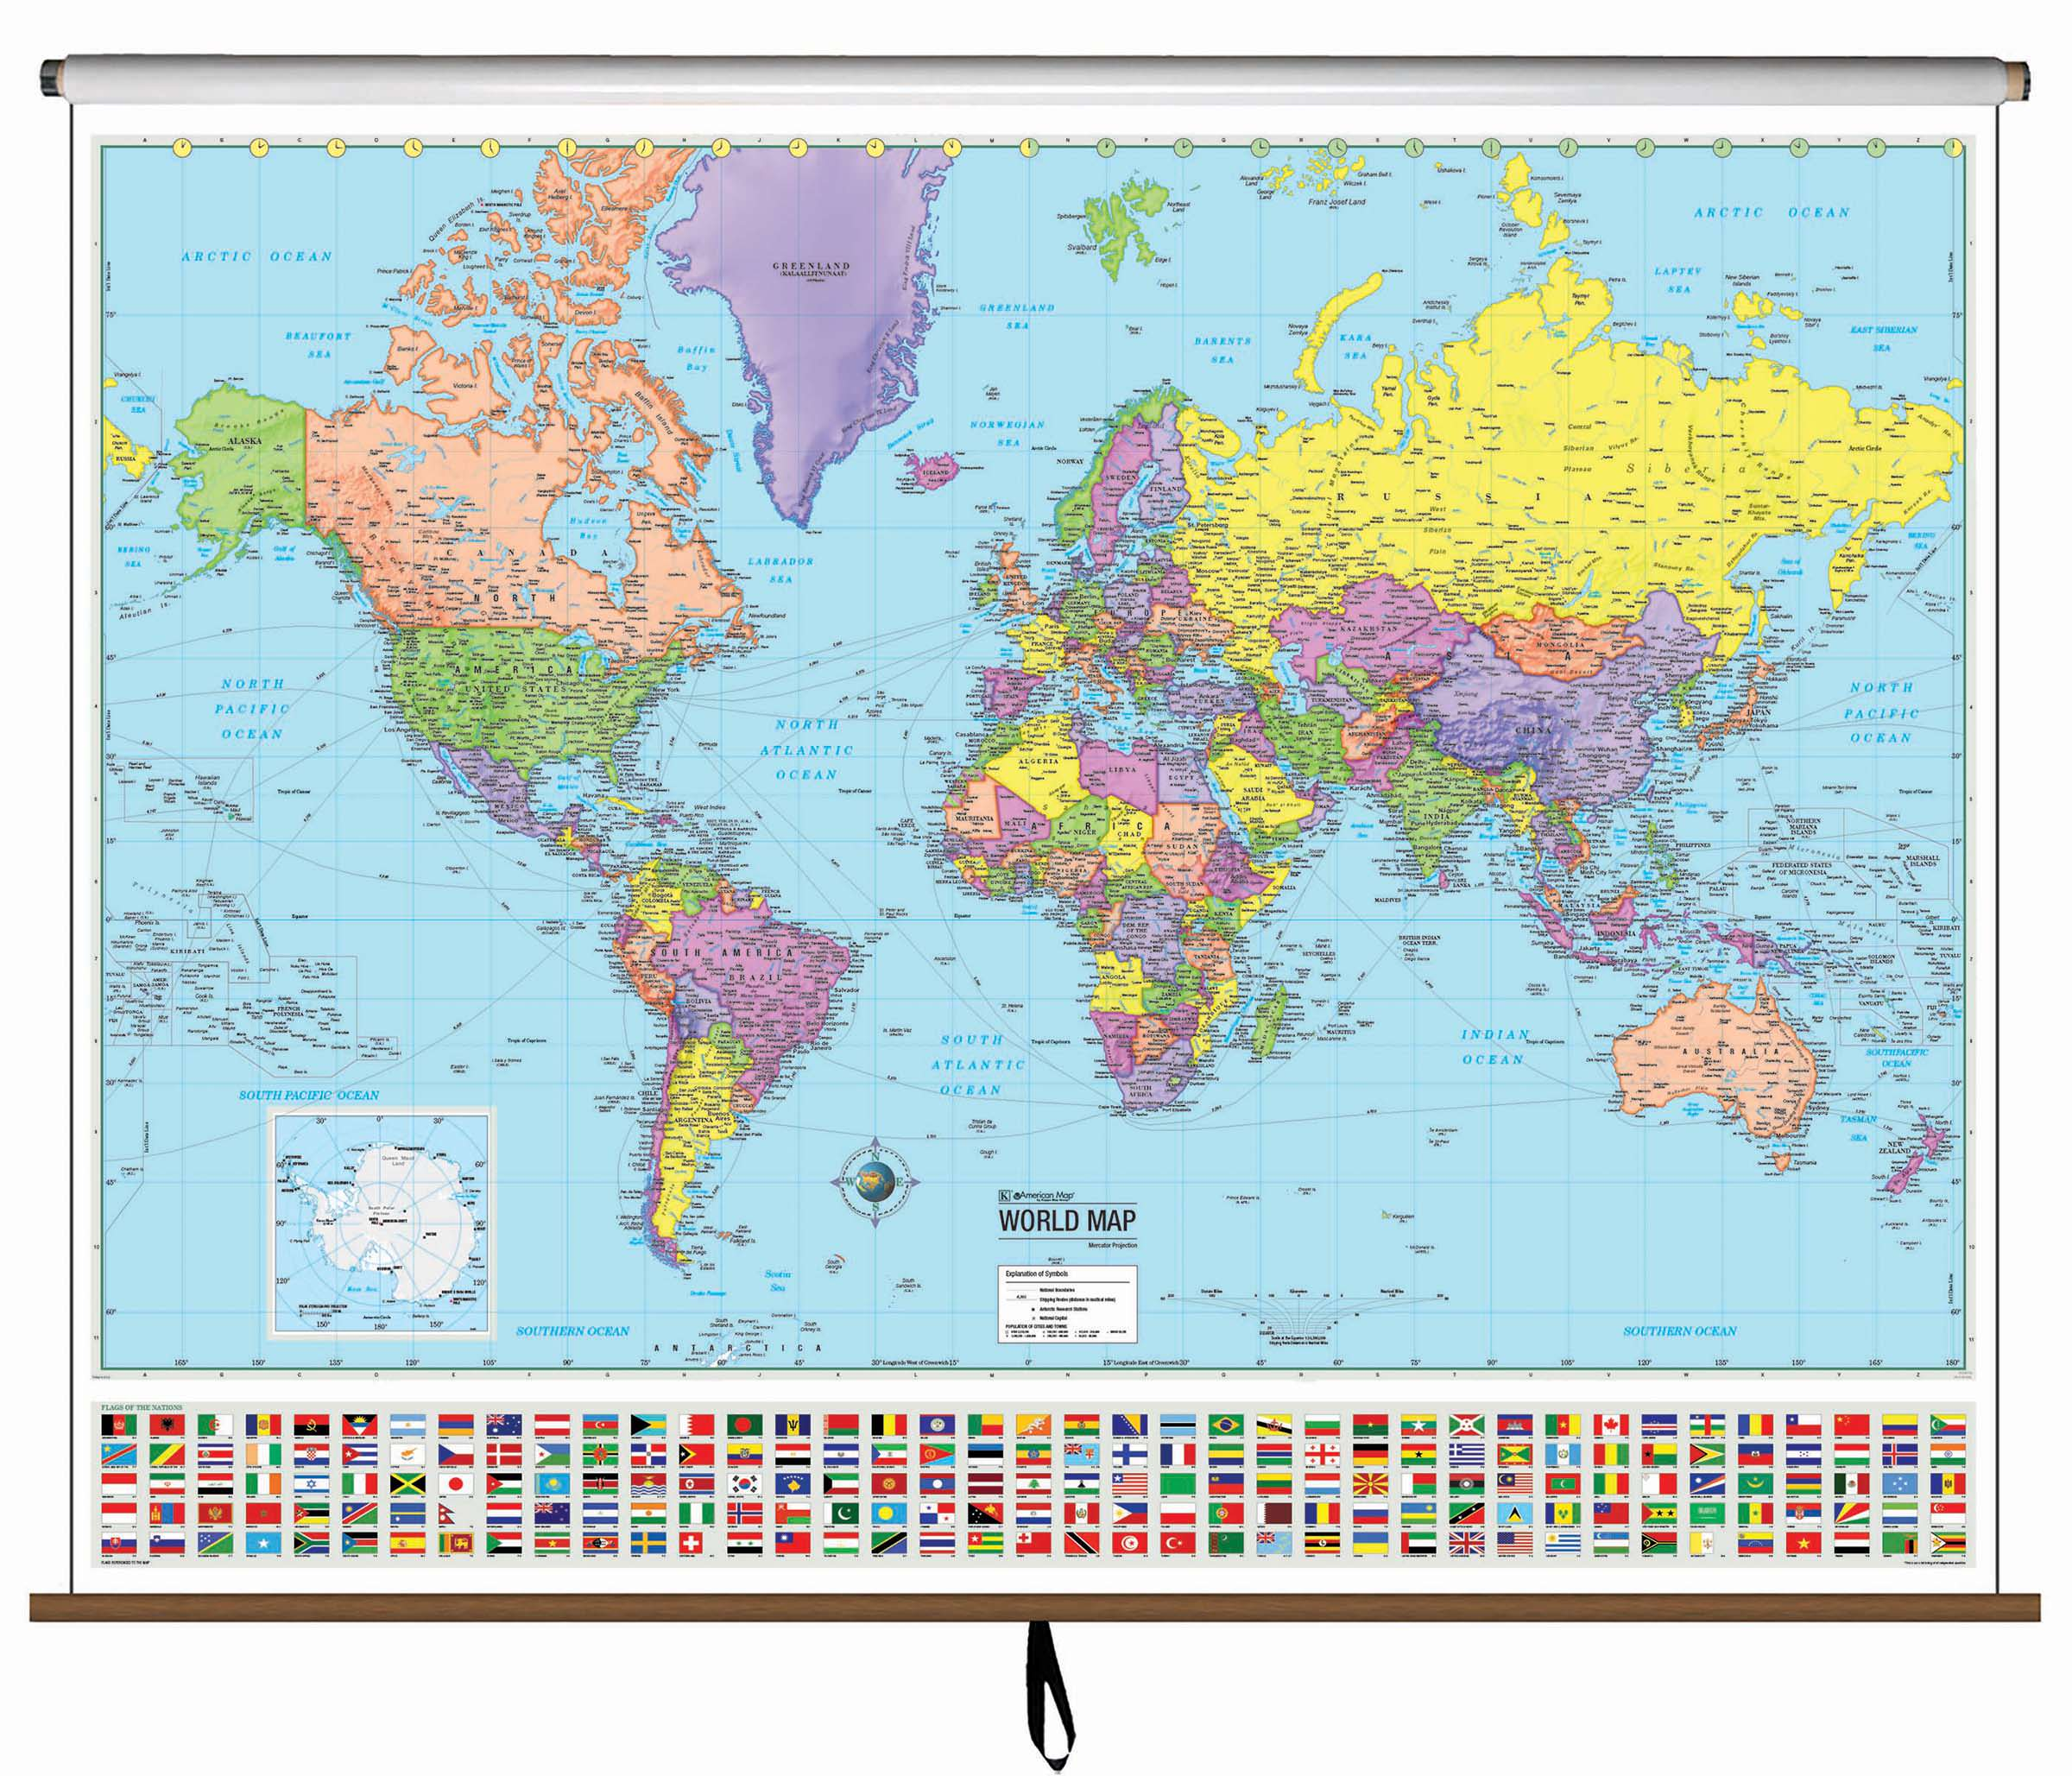 World Advanced Political Classroom Wall Map on Roller – KAPPA MAP